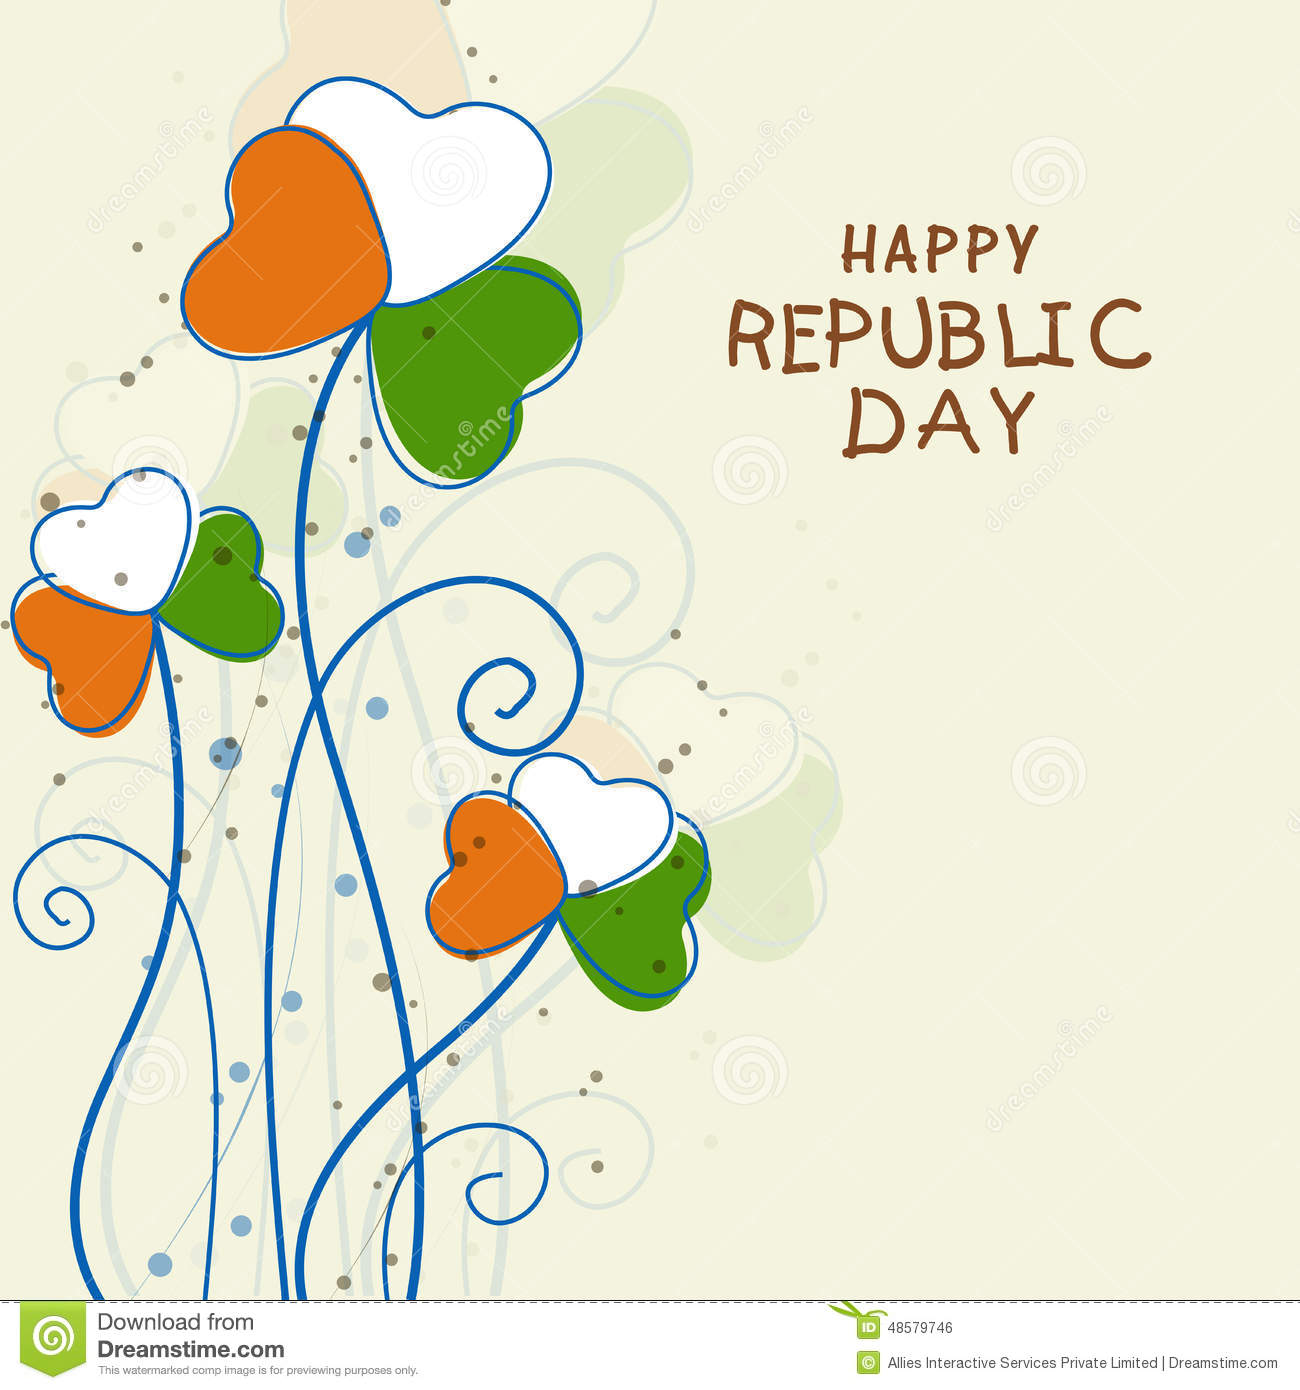 Indian republic day celebration greeting card illustration 48579746 indian republic day celebration greeting card m4hsunfo